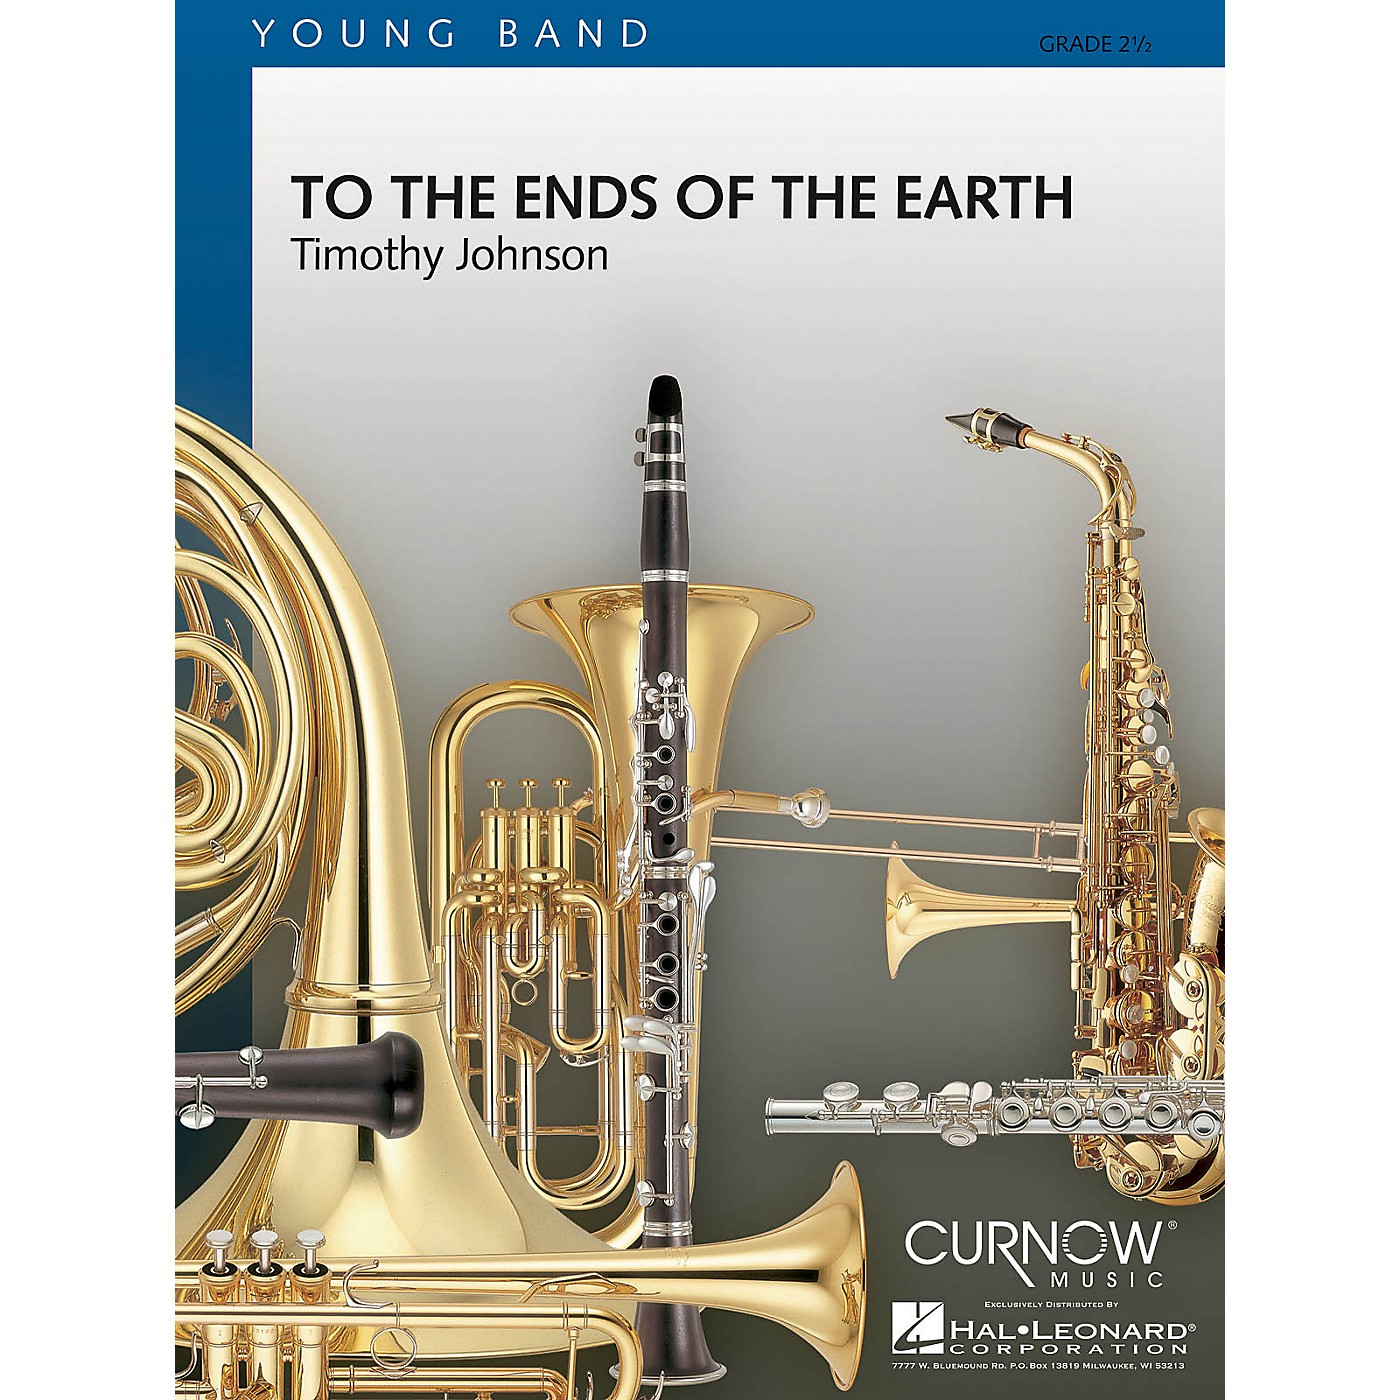 Curnow Music To the Ends of the Earth (Grade 2.5 - Score Only) Concert Band Level 2.5 Composed by Timothy Johnson thumbnail